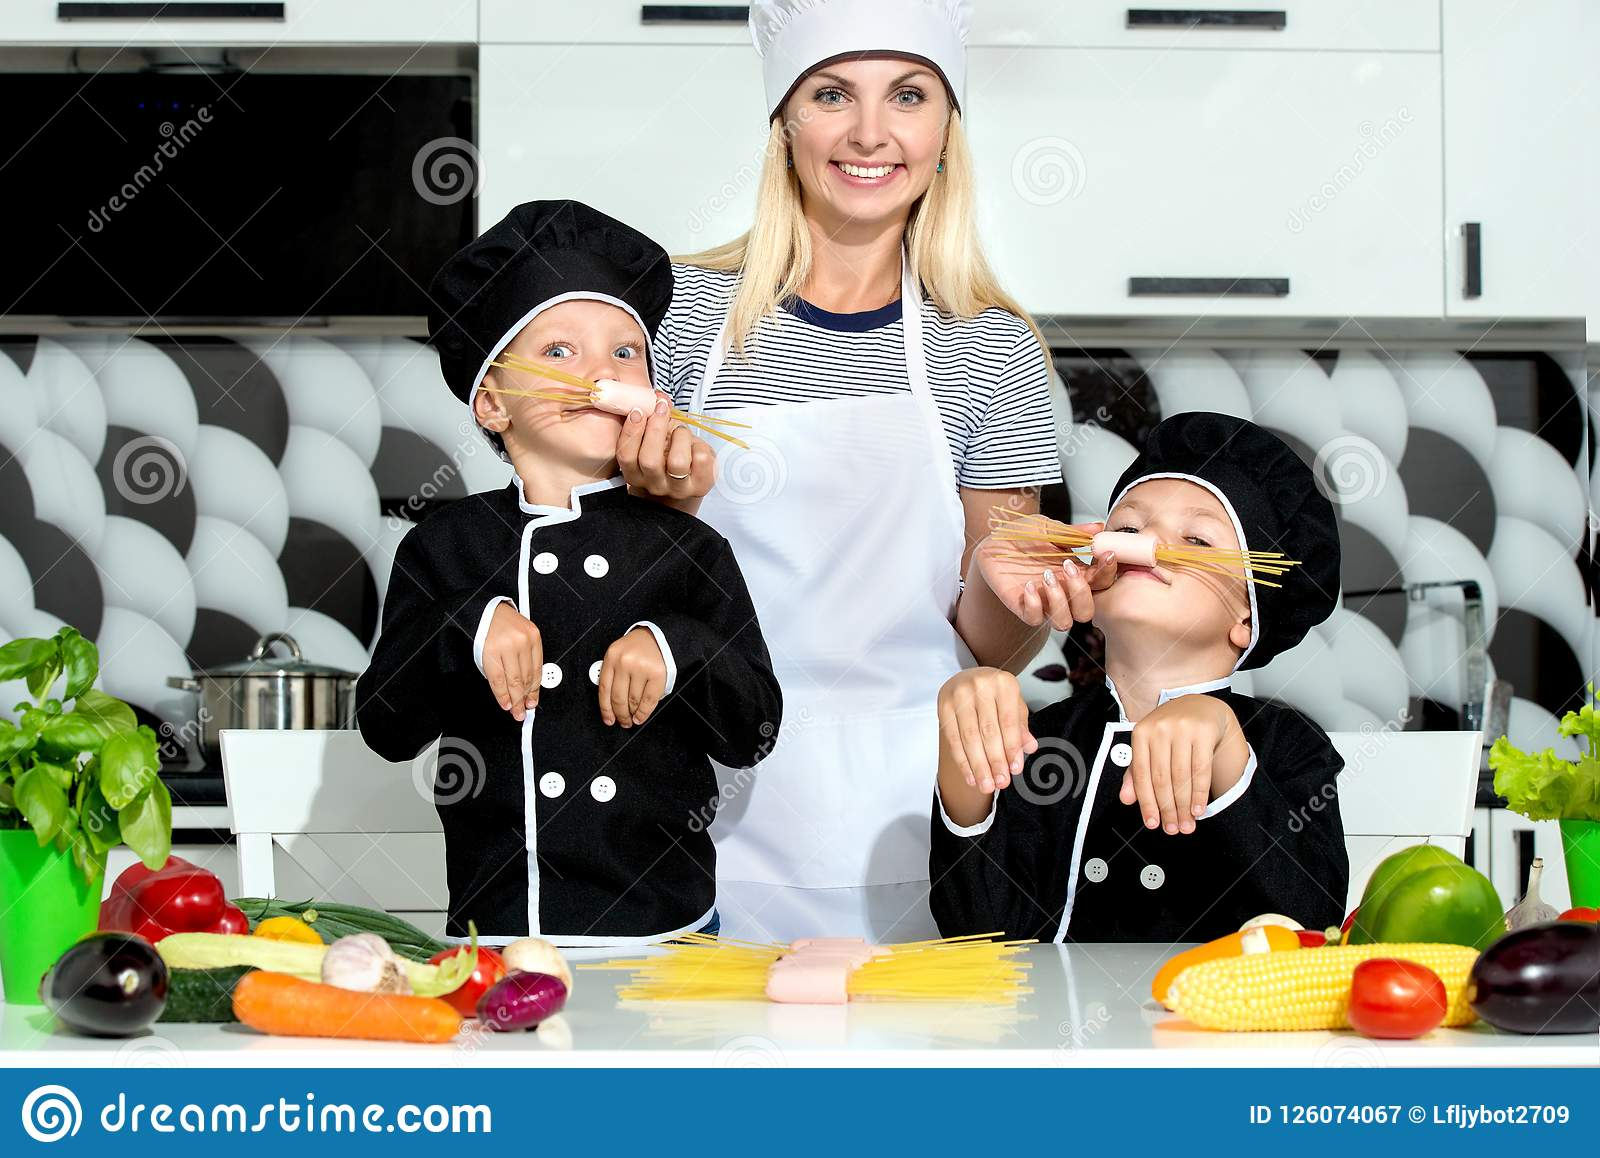 A family of cooks.Mother and children prepares spaghetti in kitchen.